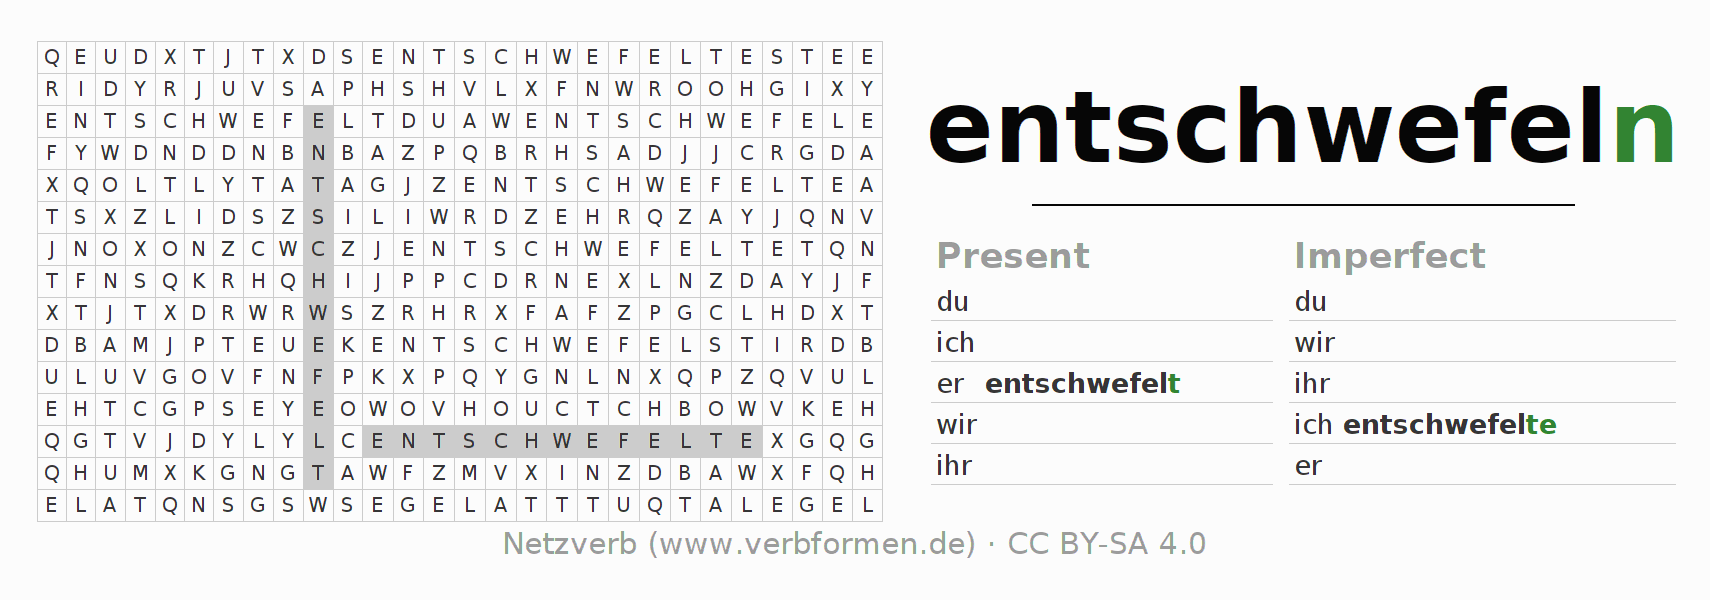 Word search puzzle for the conjugation of the verb entschwefeln